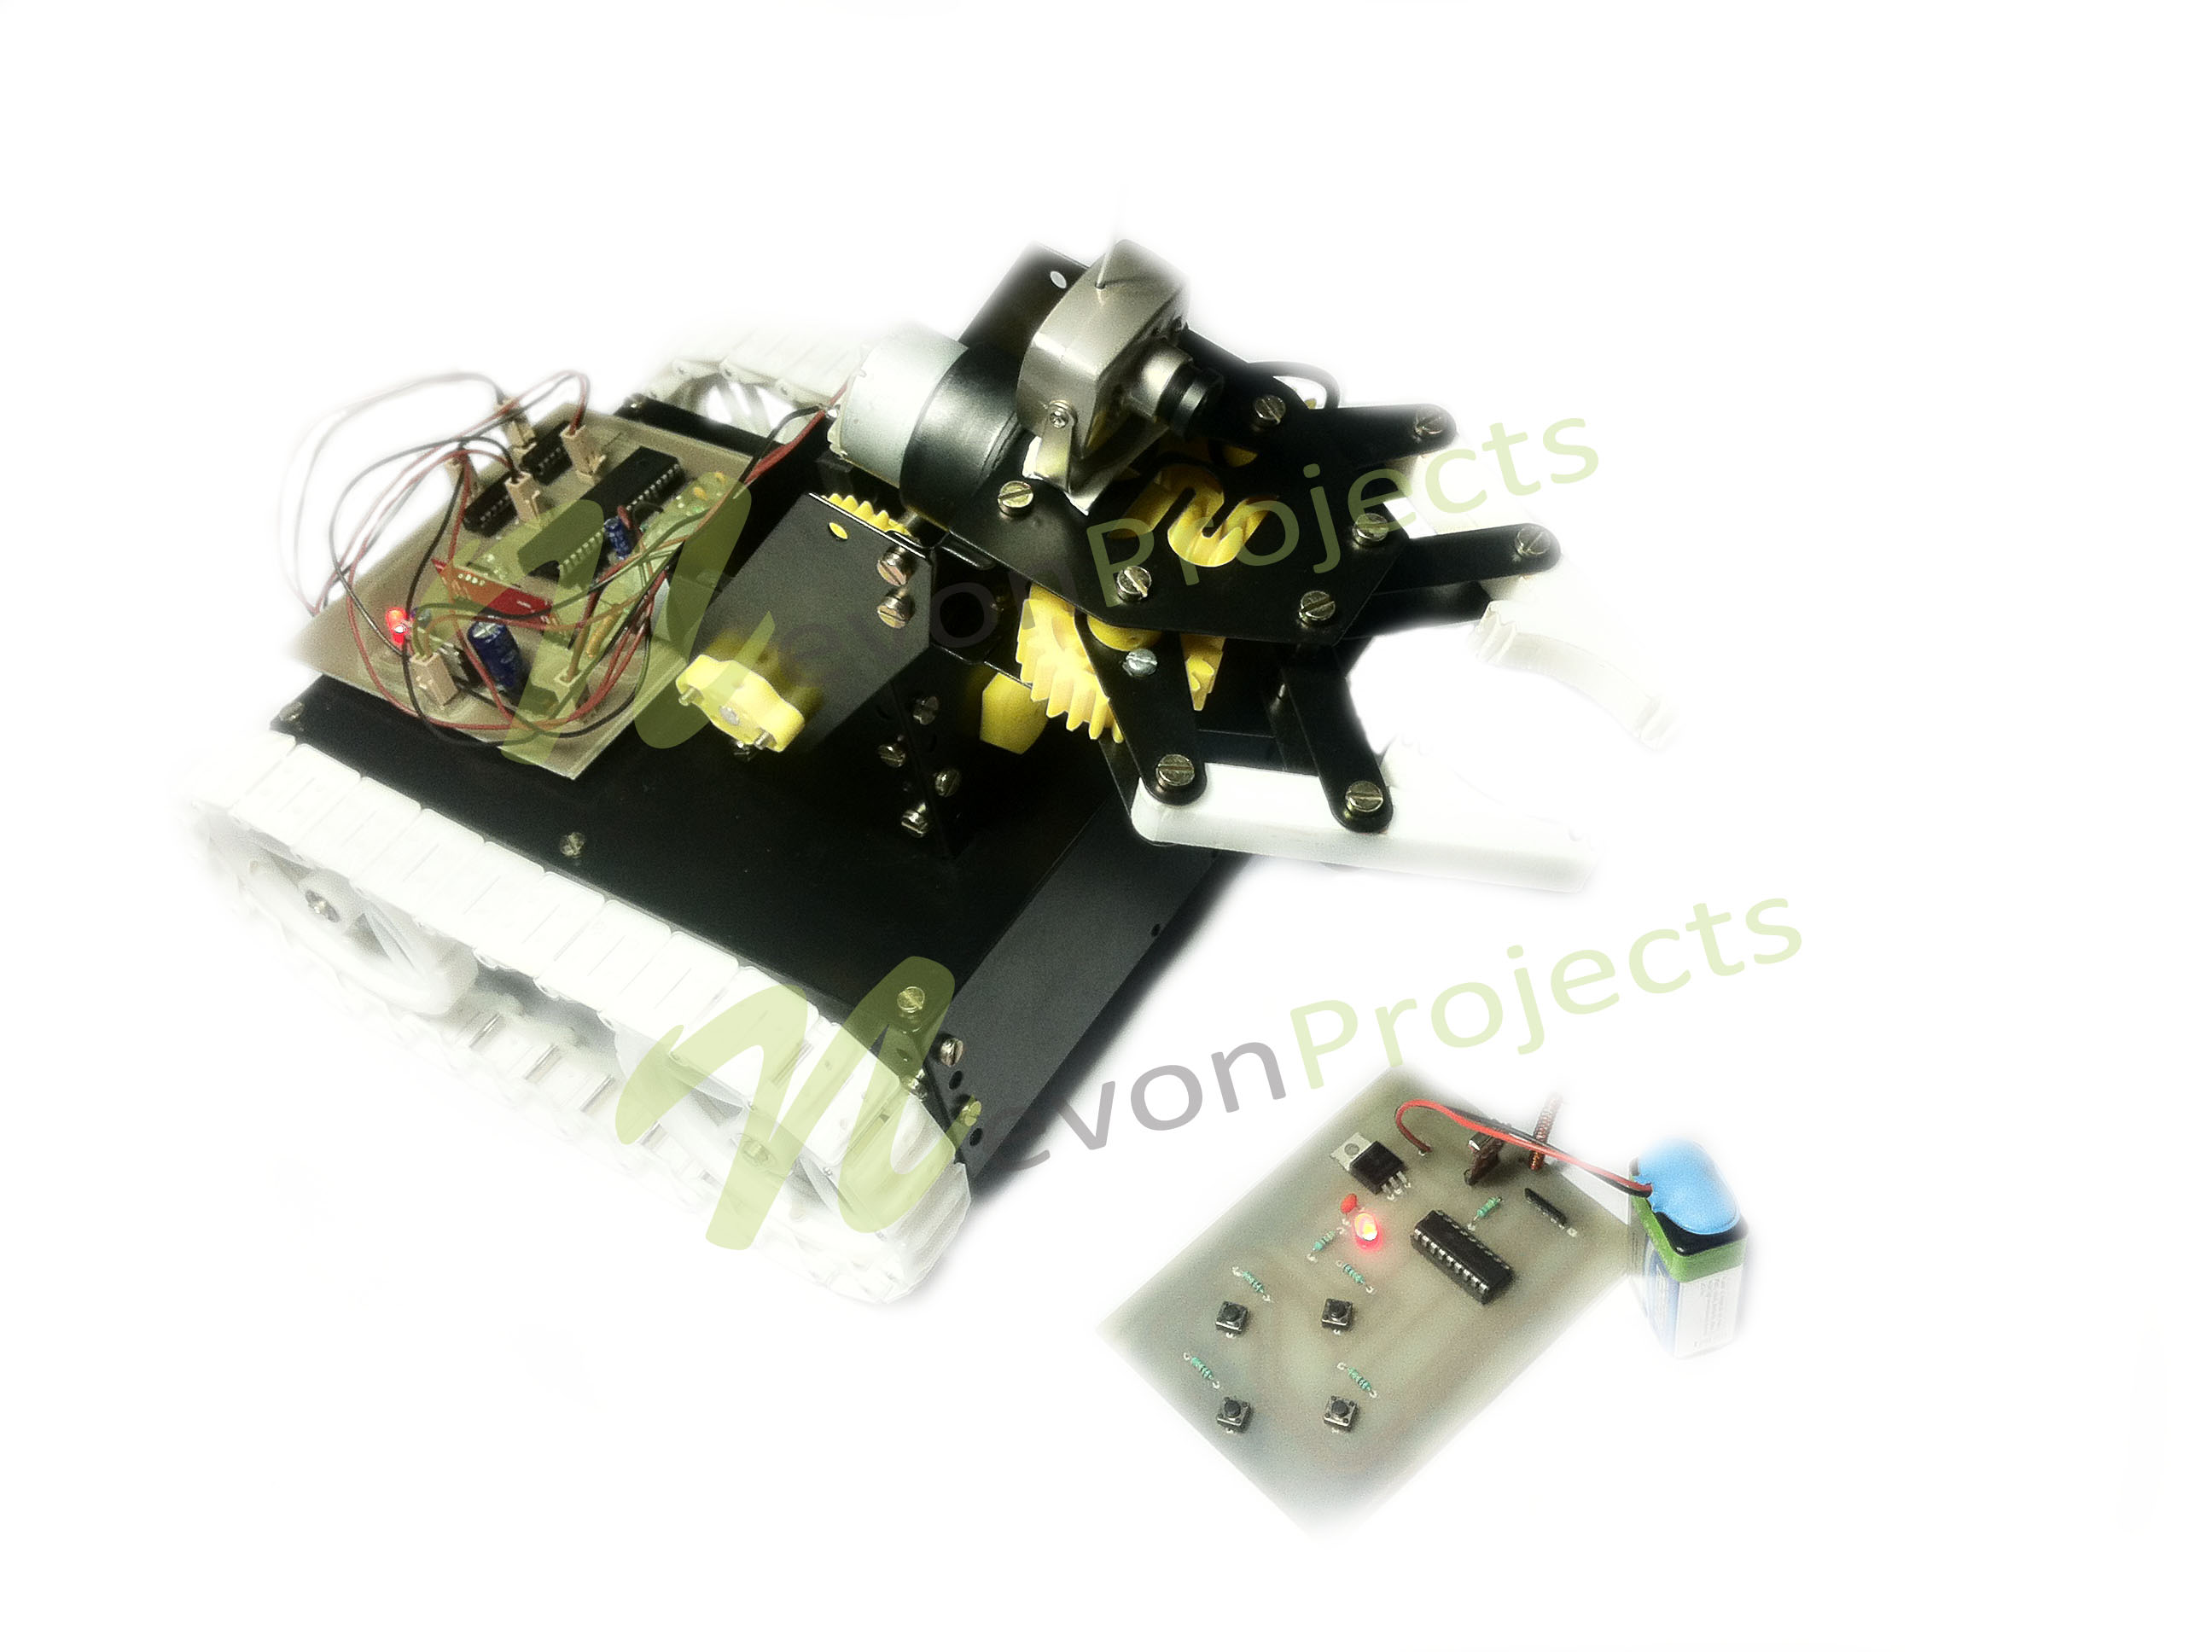 Advanced Military Spying Bomb Disposal Robot 8051 Microcontroller Projects 038 Circuits And Project